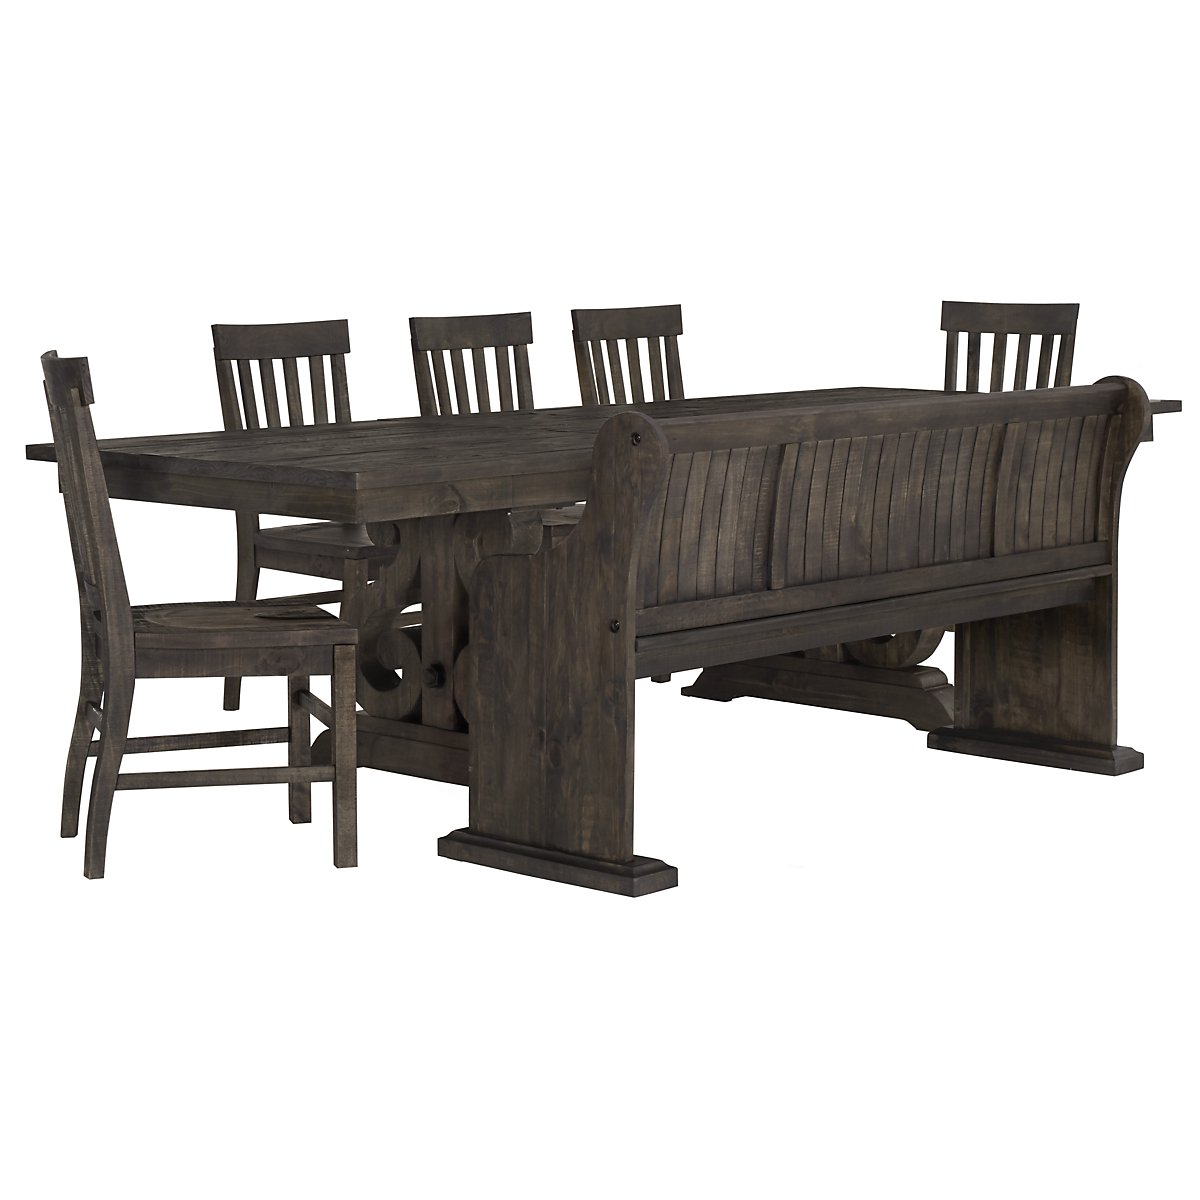 Sonoma Dark Tone Table 4 Chairs Bench